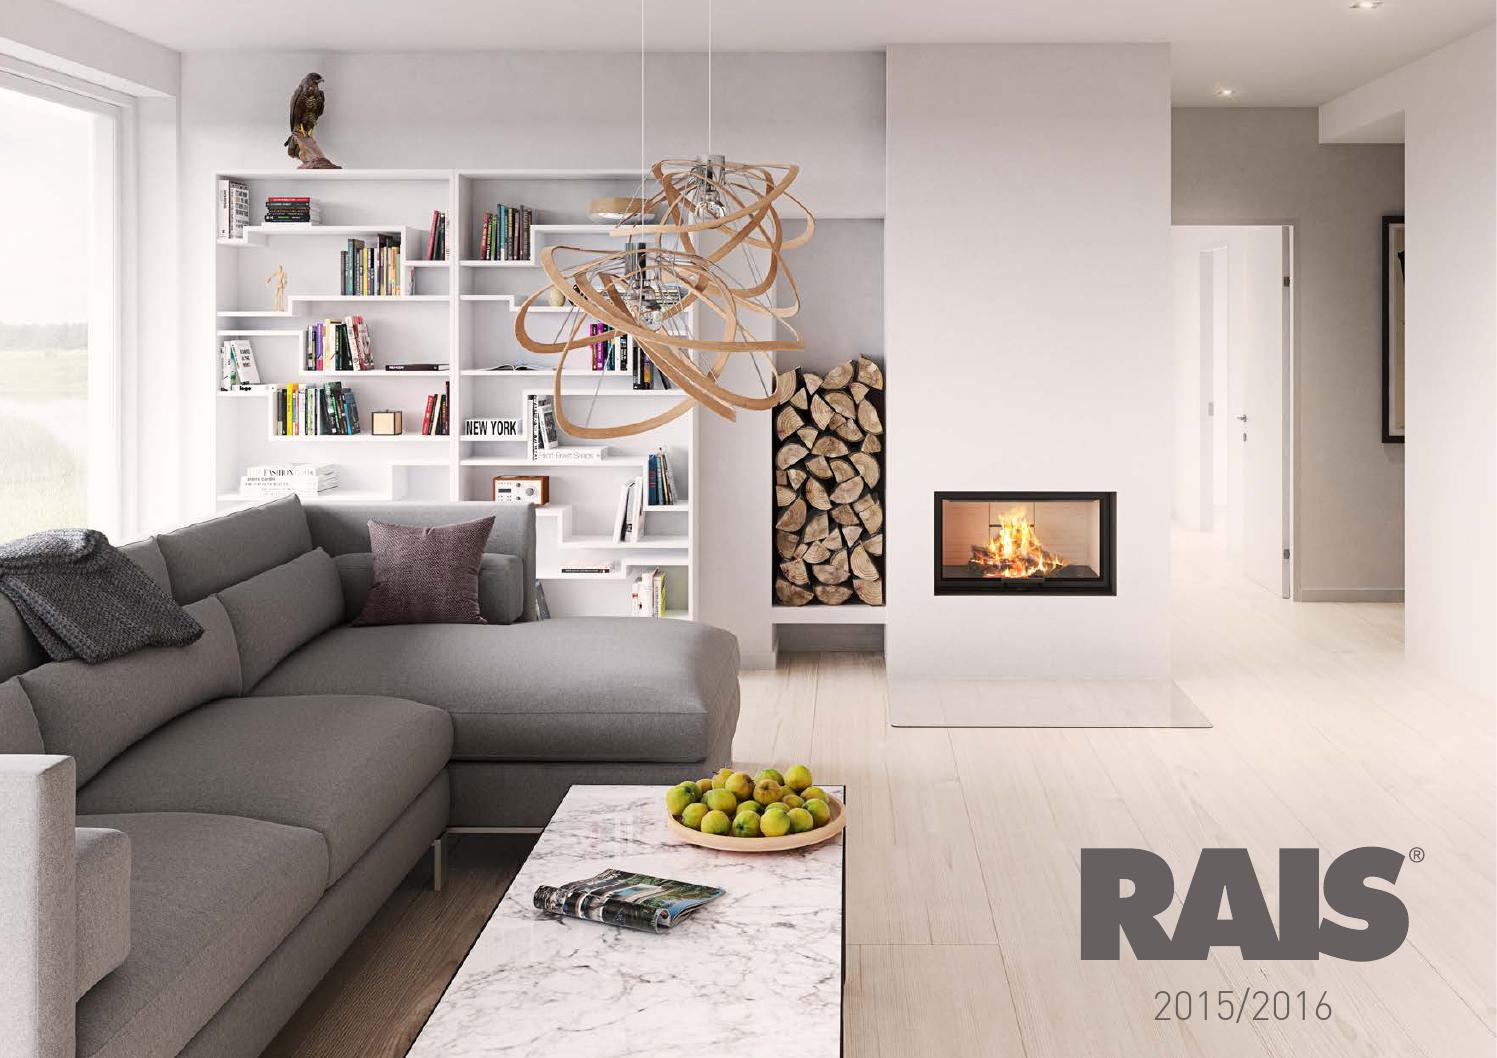 Meubles Rais Rais Katalog 15 16 F Low By Rais A S Issuu